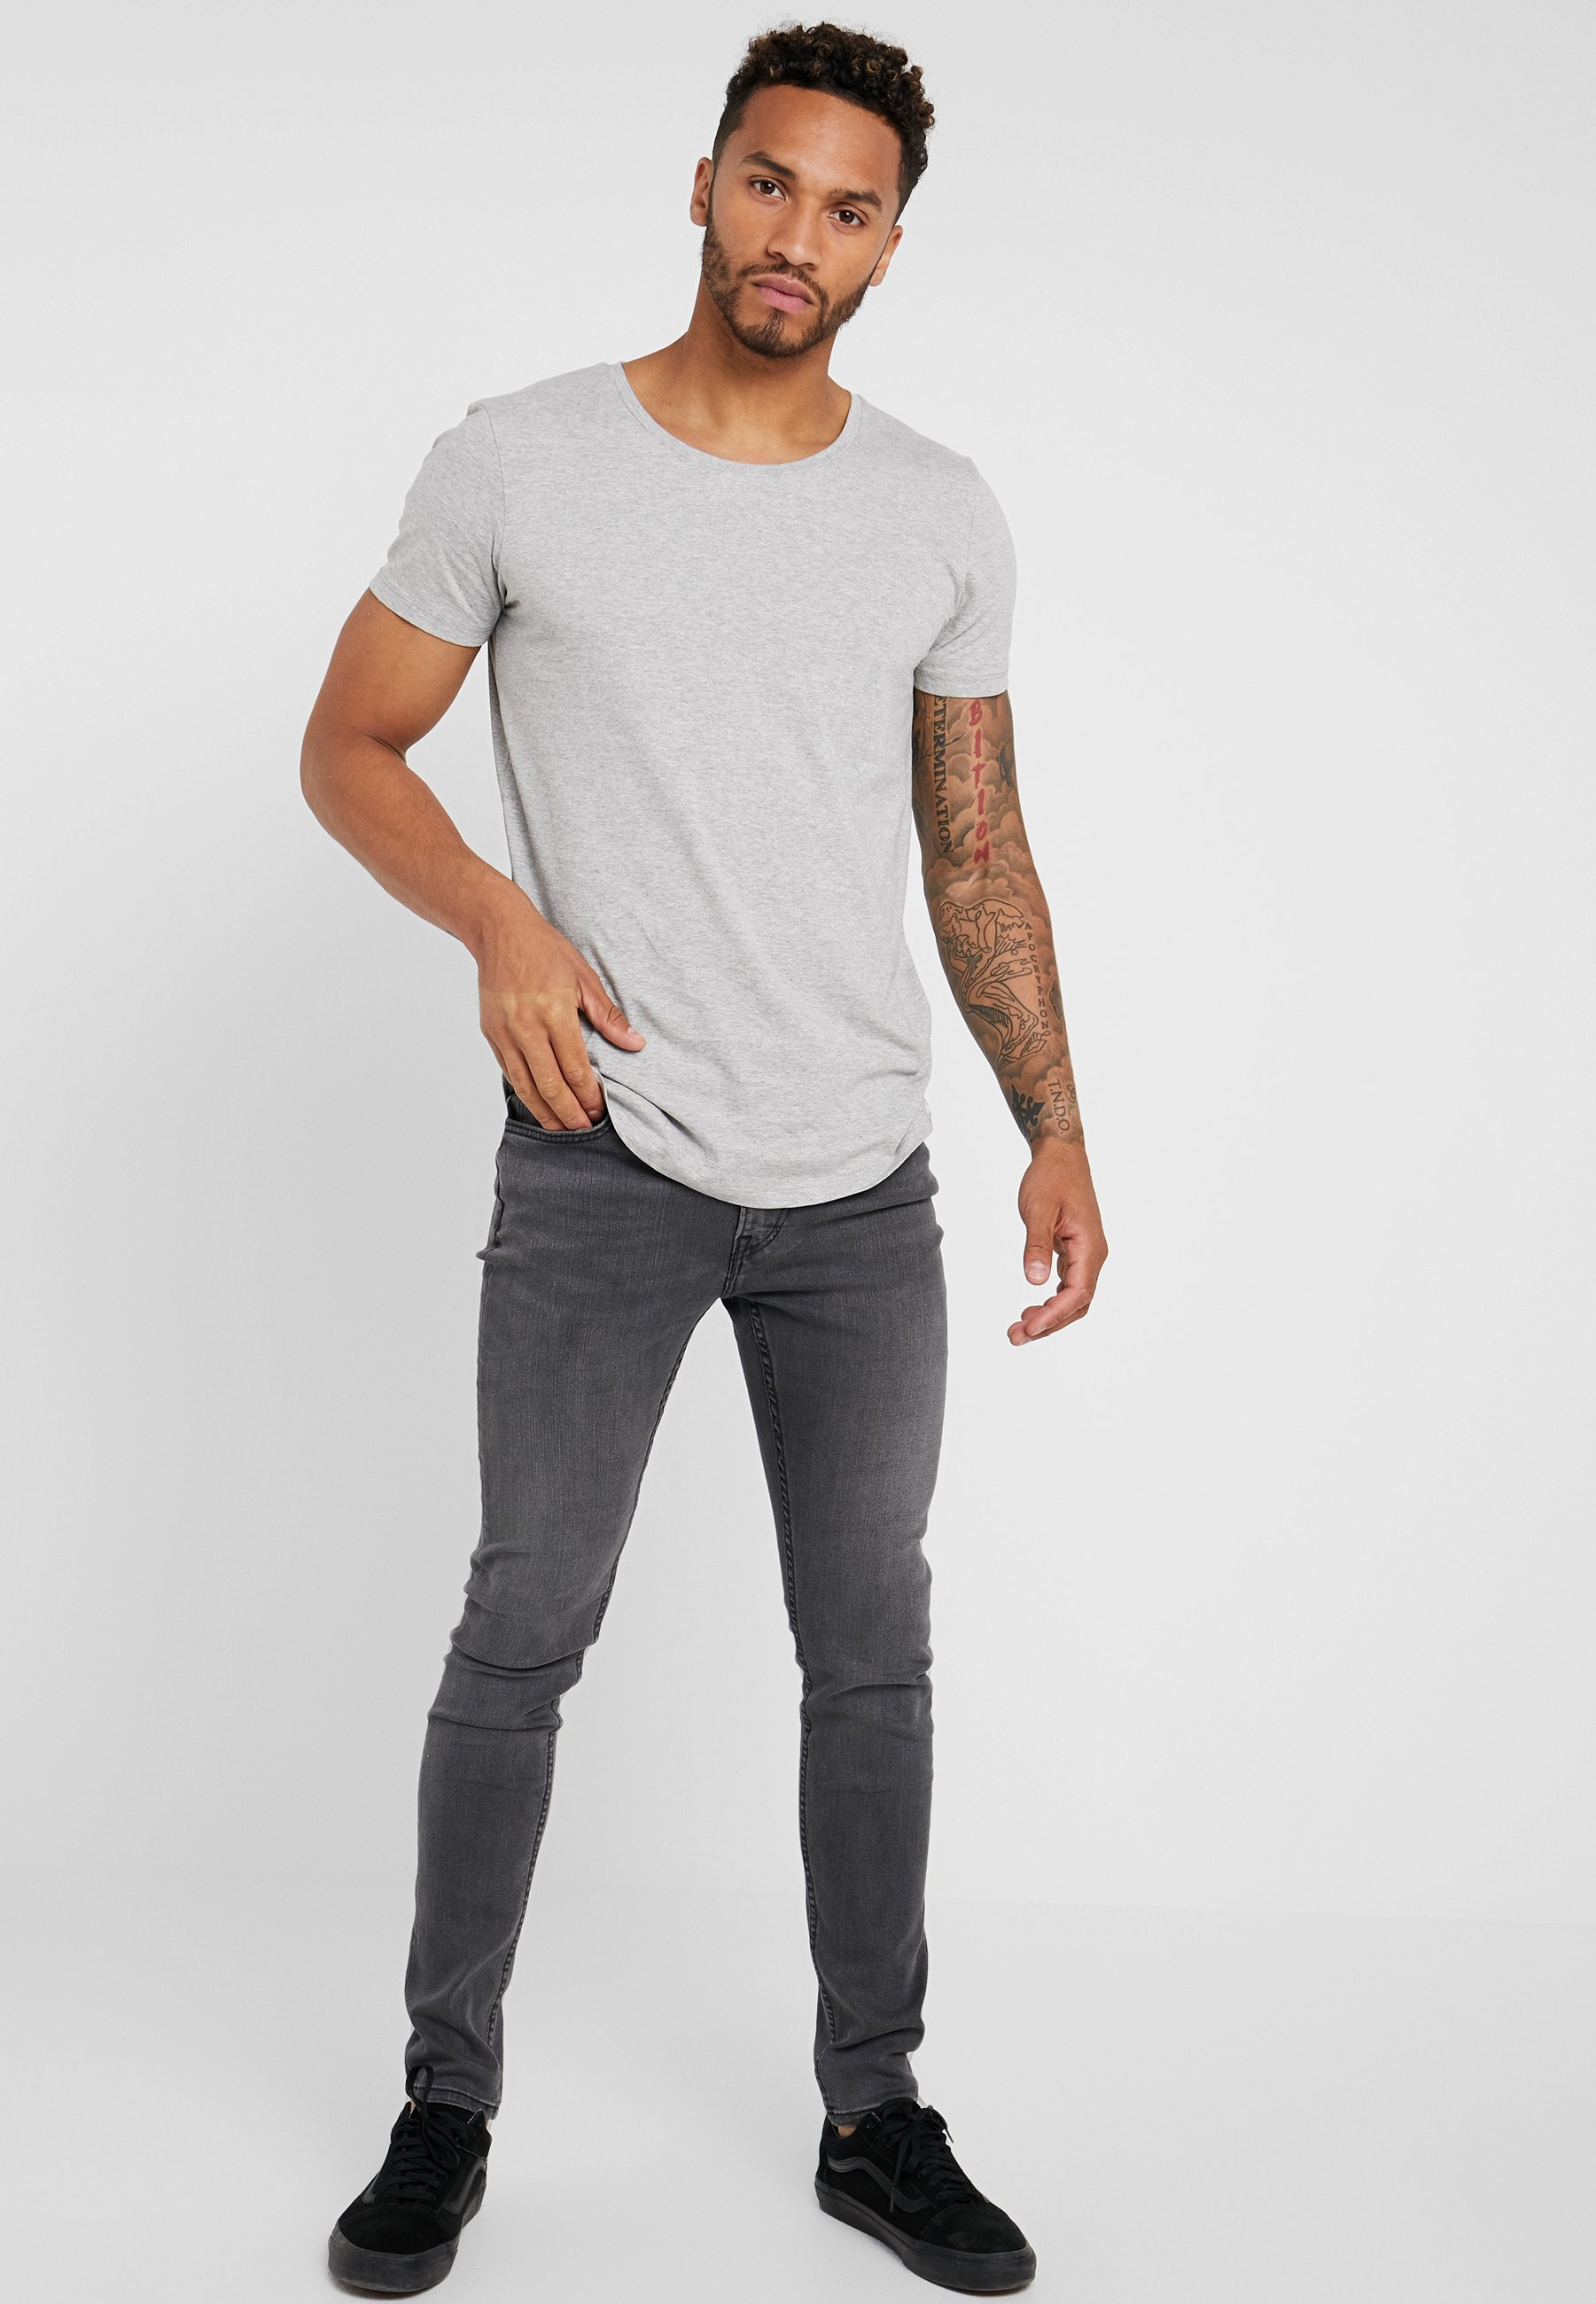 Lee Malone - Jeans Skinny Fit New Grey/svart Denim